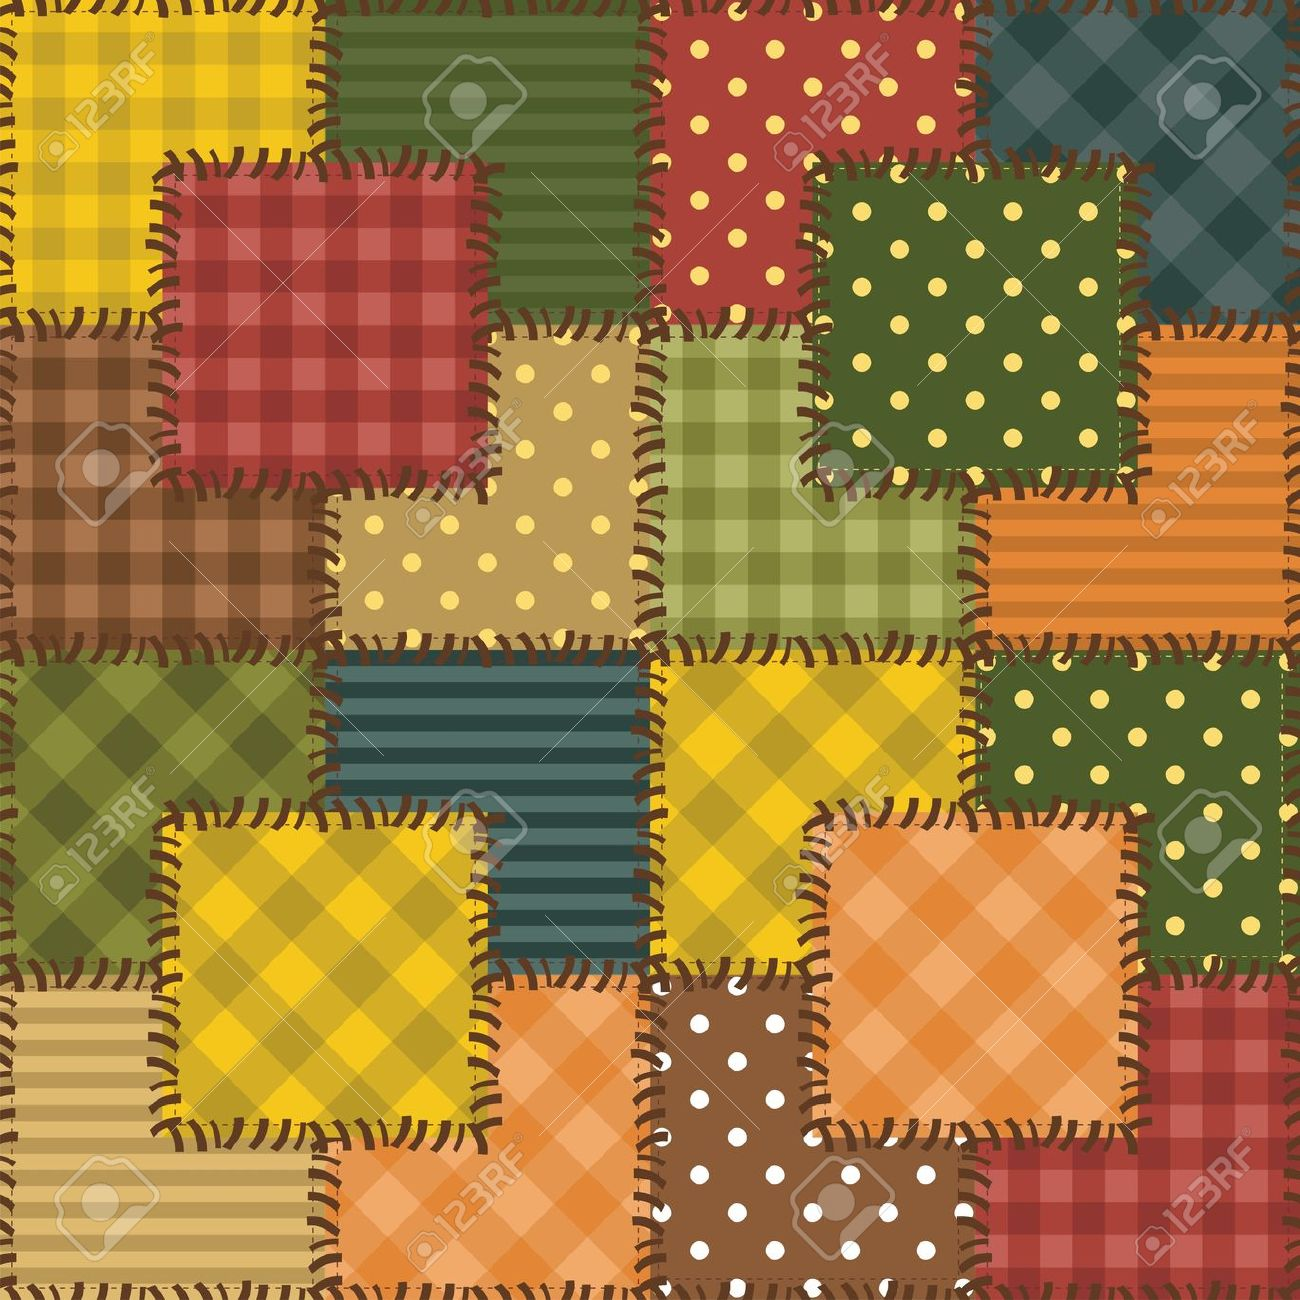 Patchwork Designs Clip Art Free.